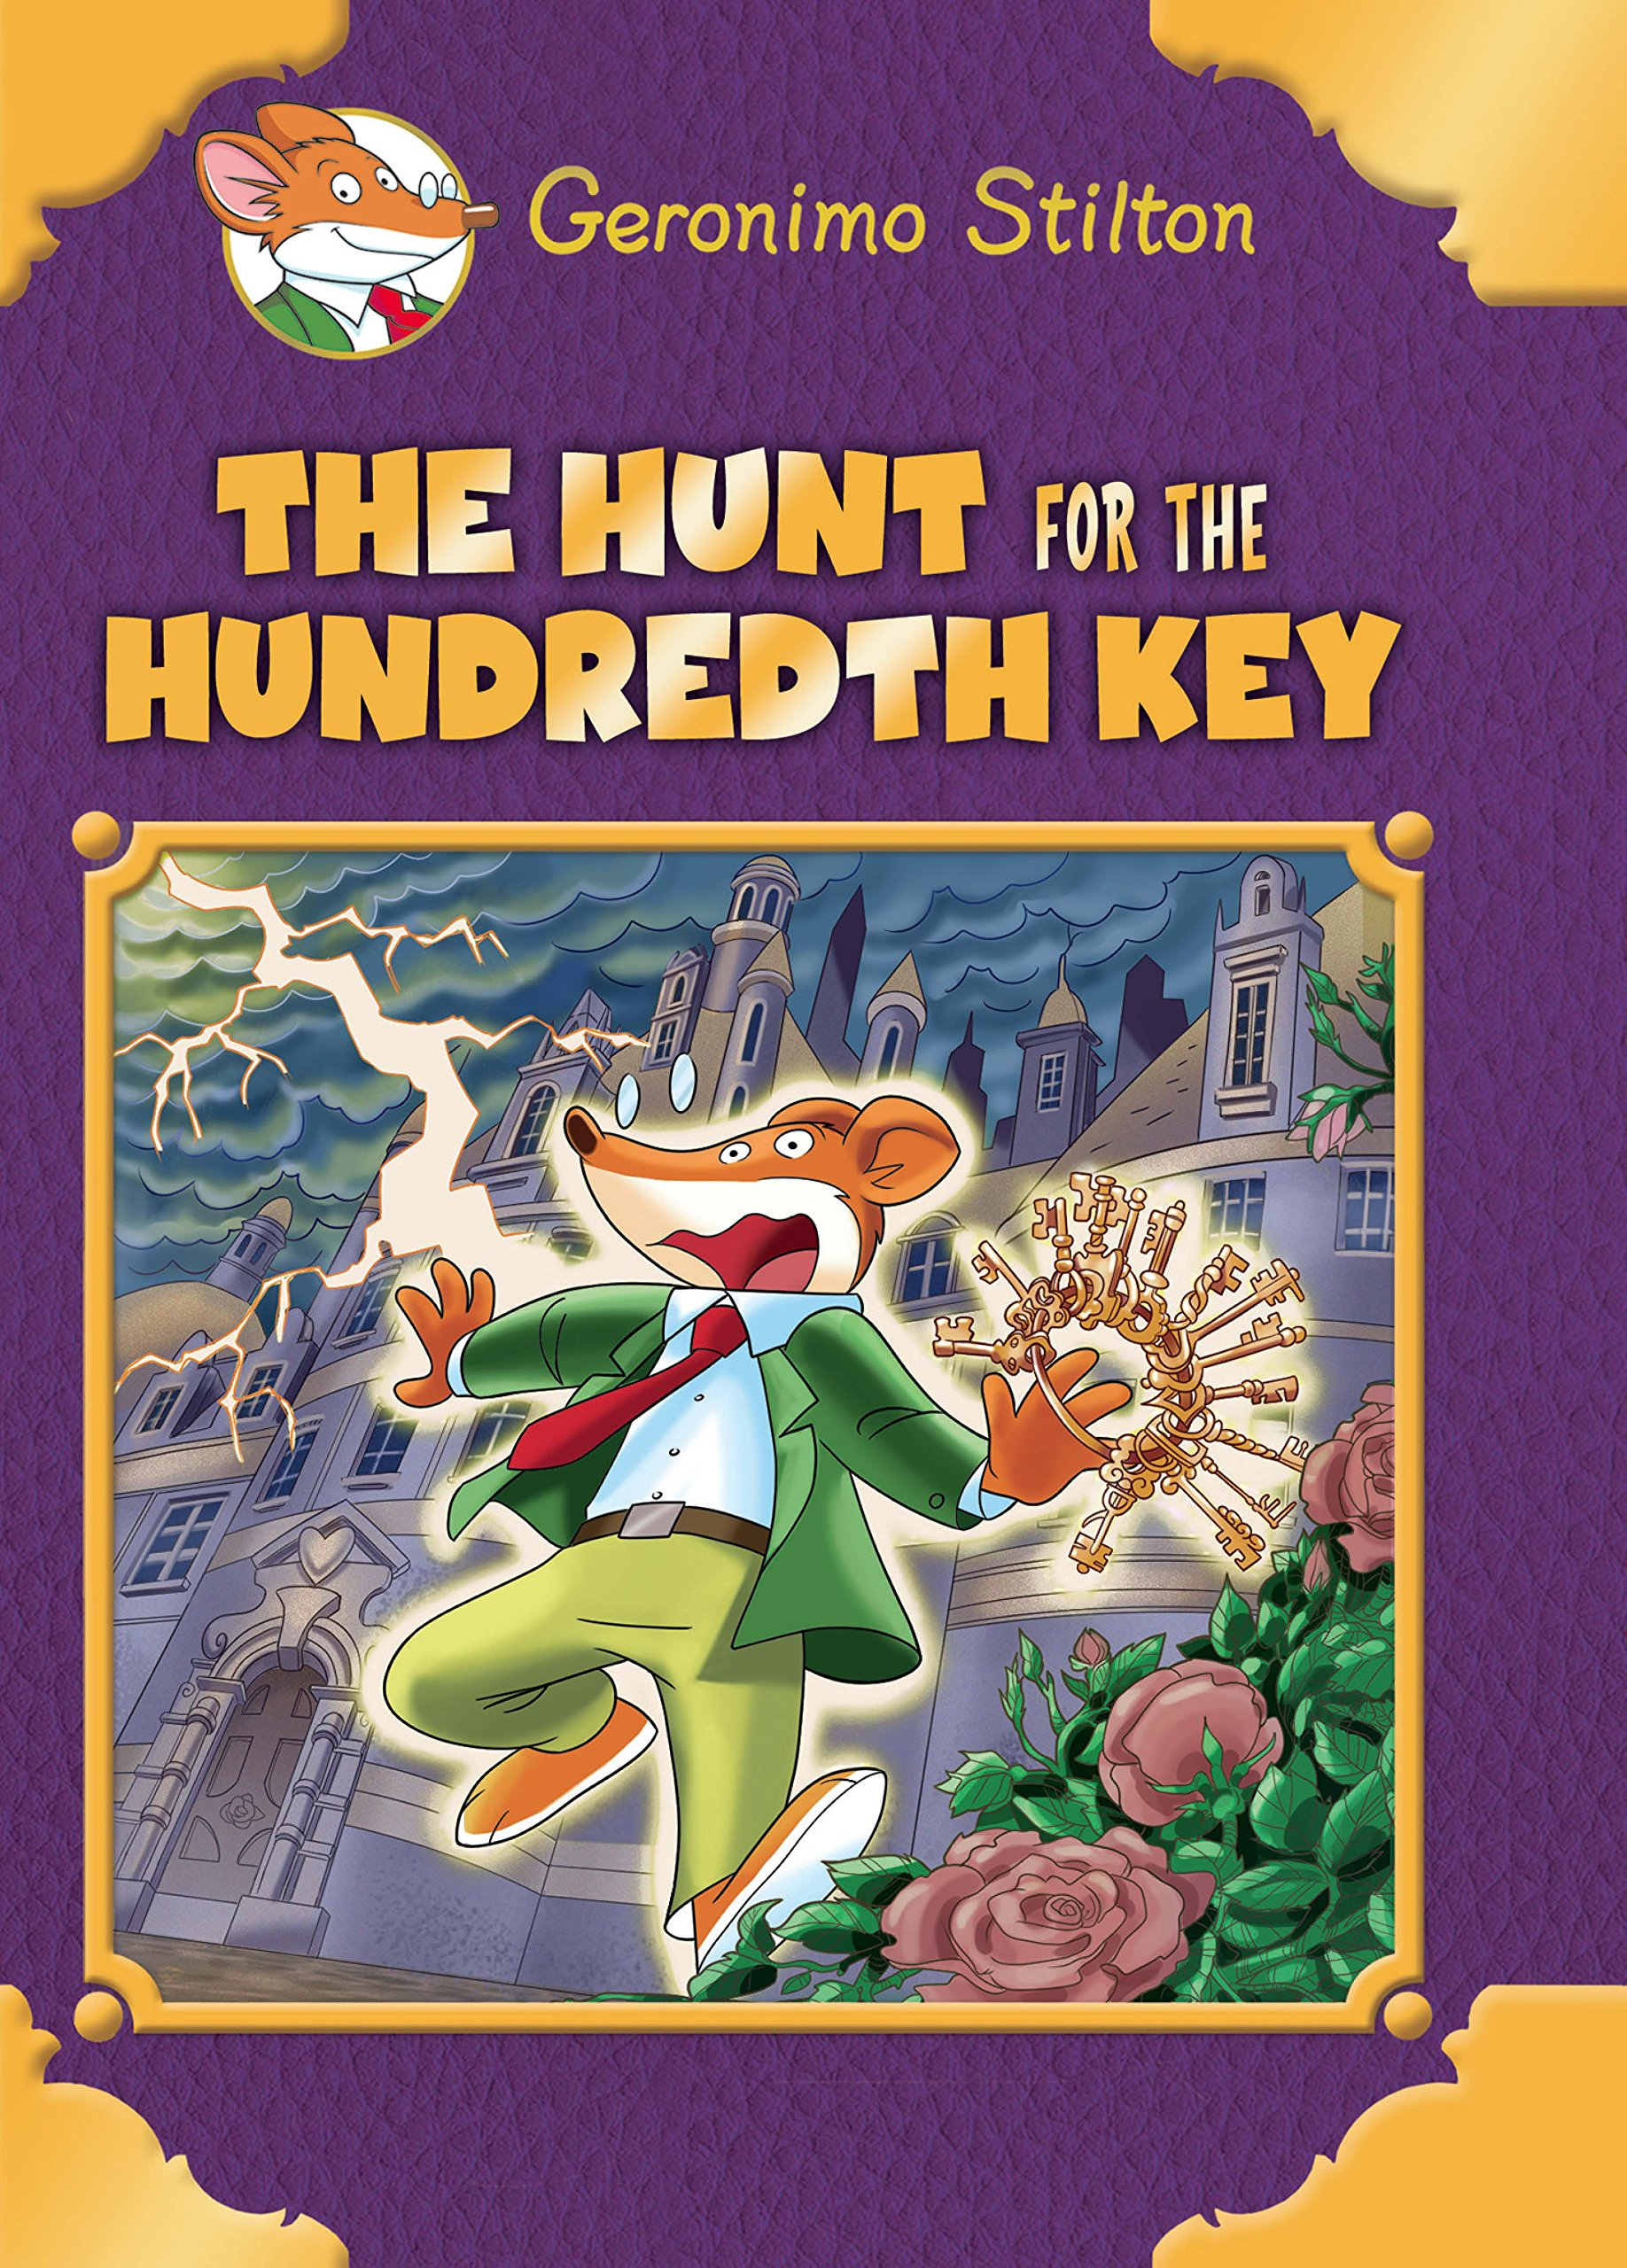 buy geronimo stilton 65 bollywood burglary book online at low